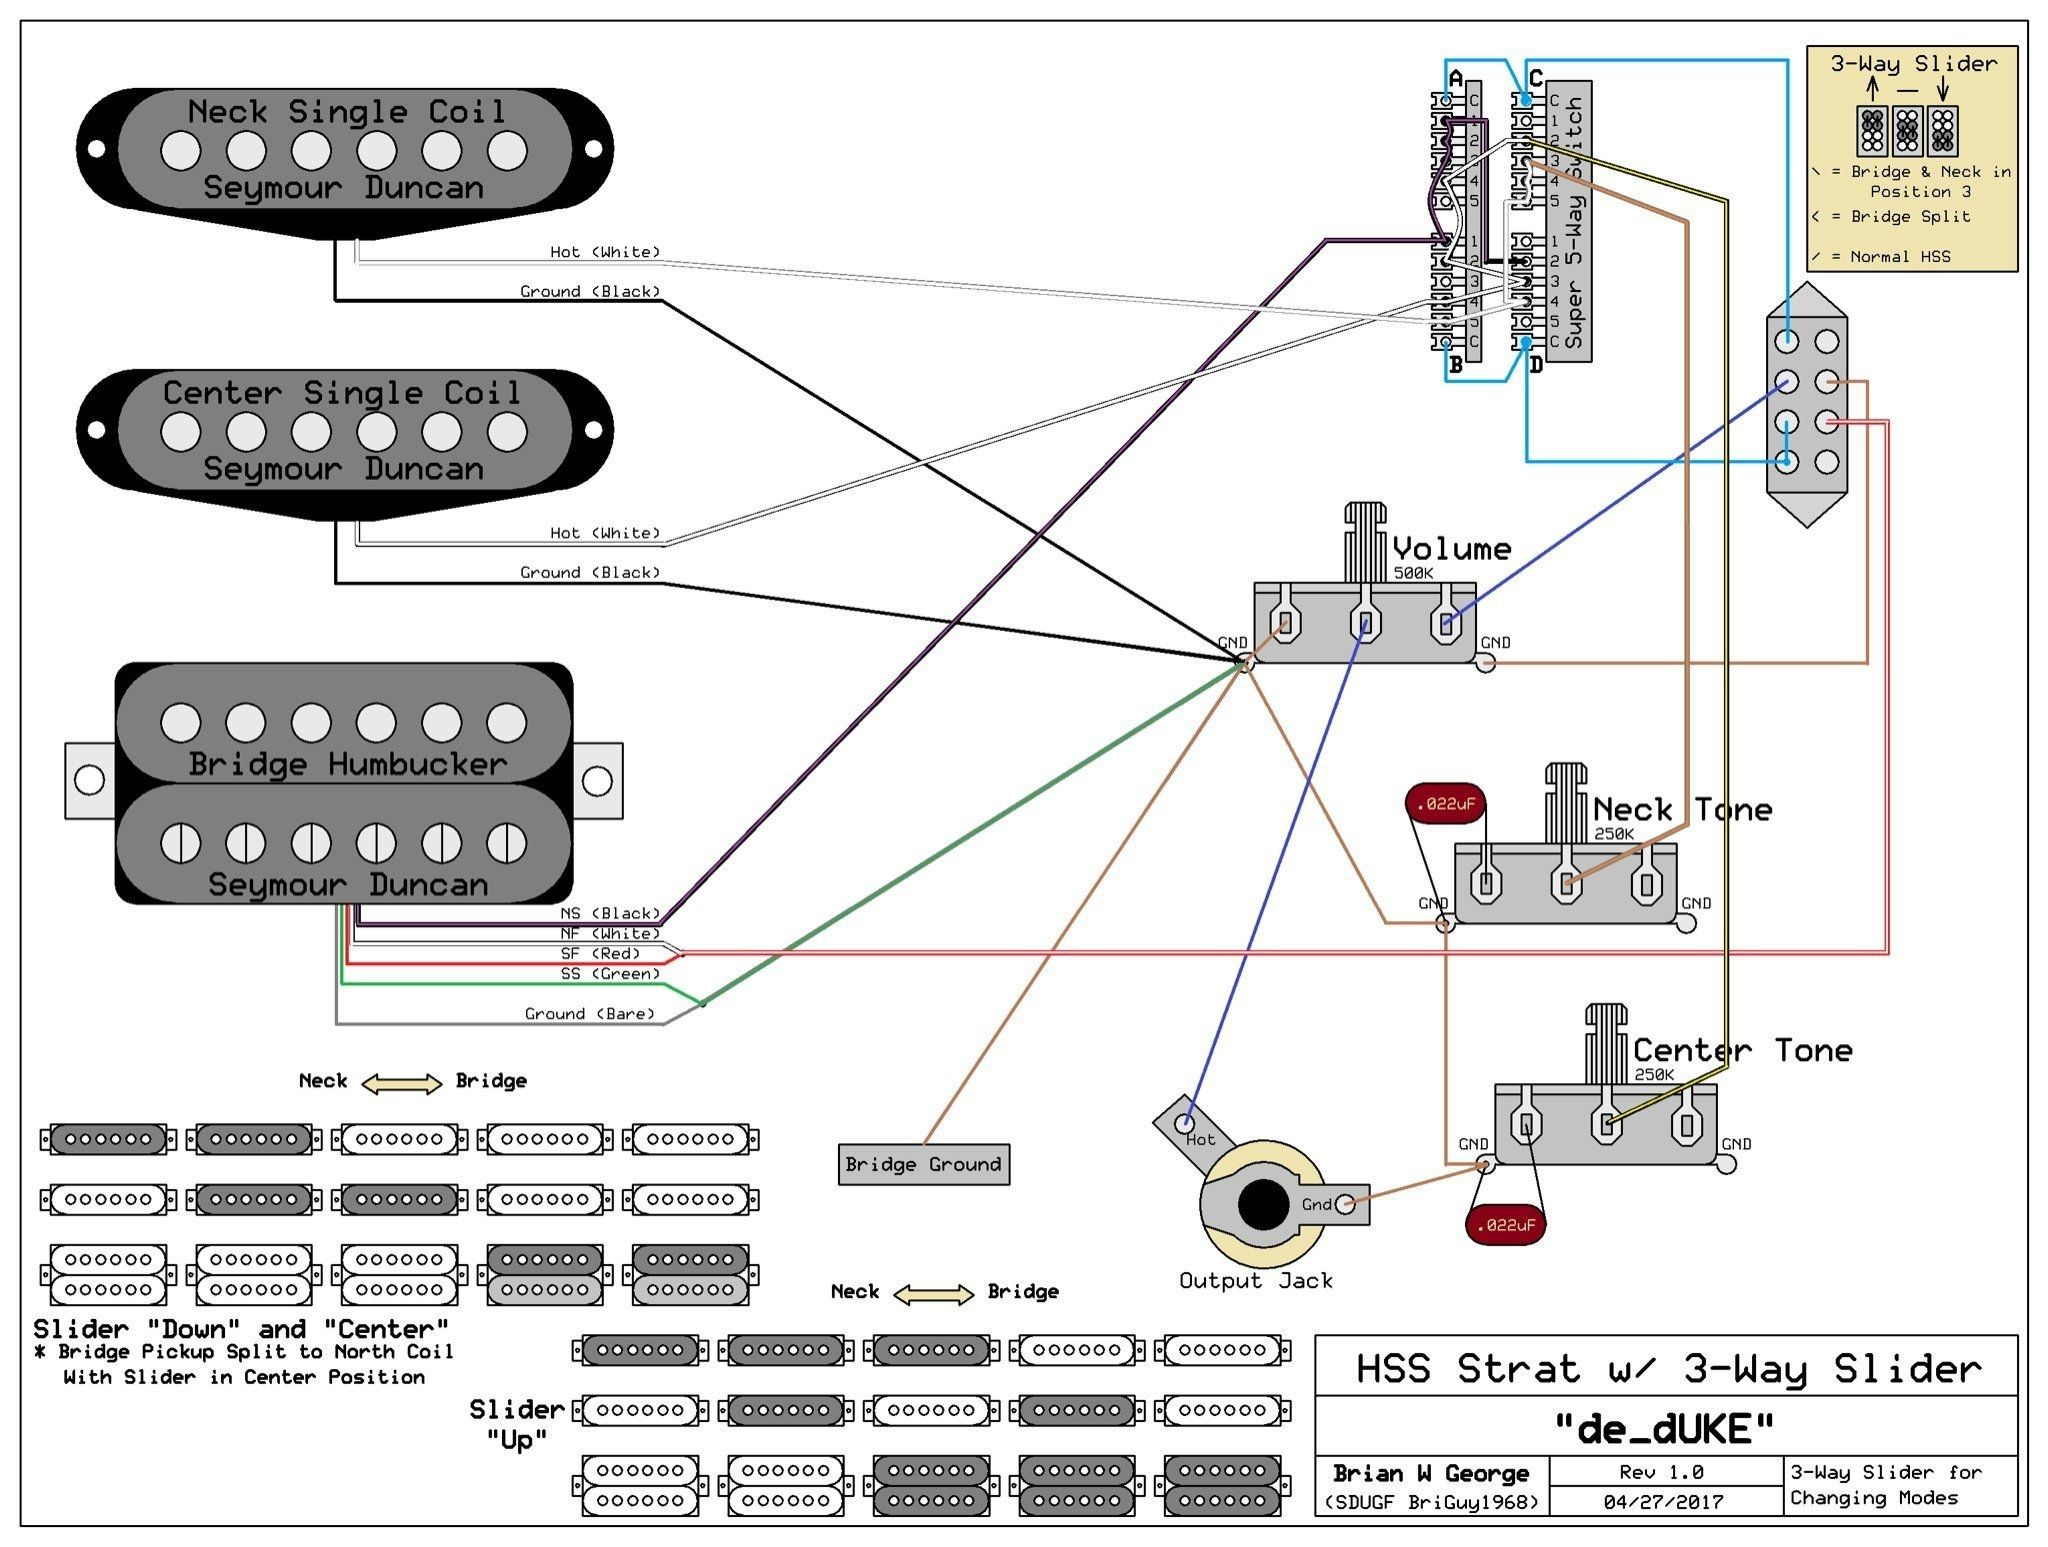 Wiring Diagrams For Strat Fresh Wiring Diagram Guitar 3 Way ... on fender stratocaster wiring modifications, fender stratocaster series wiring diagram, seymour duncan p-rails wiring-diagram, fender stratocaster pickup wiring, fender strat ultra wiring-diagram, fender tbx wiring-diagram, fender squier wiring-diagram, fender telecaster texas special pickups wiring-diagram, fender stratocaster schematic diagram, fender stratocaster wiring diagram for 1966, fender vintage noise less pickups wiring-diagram,